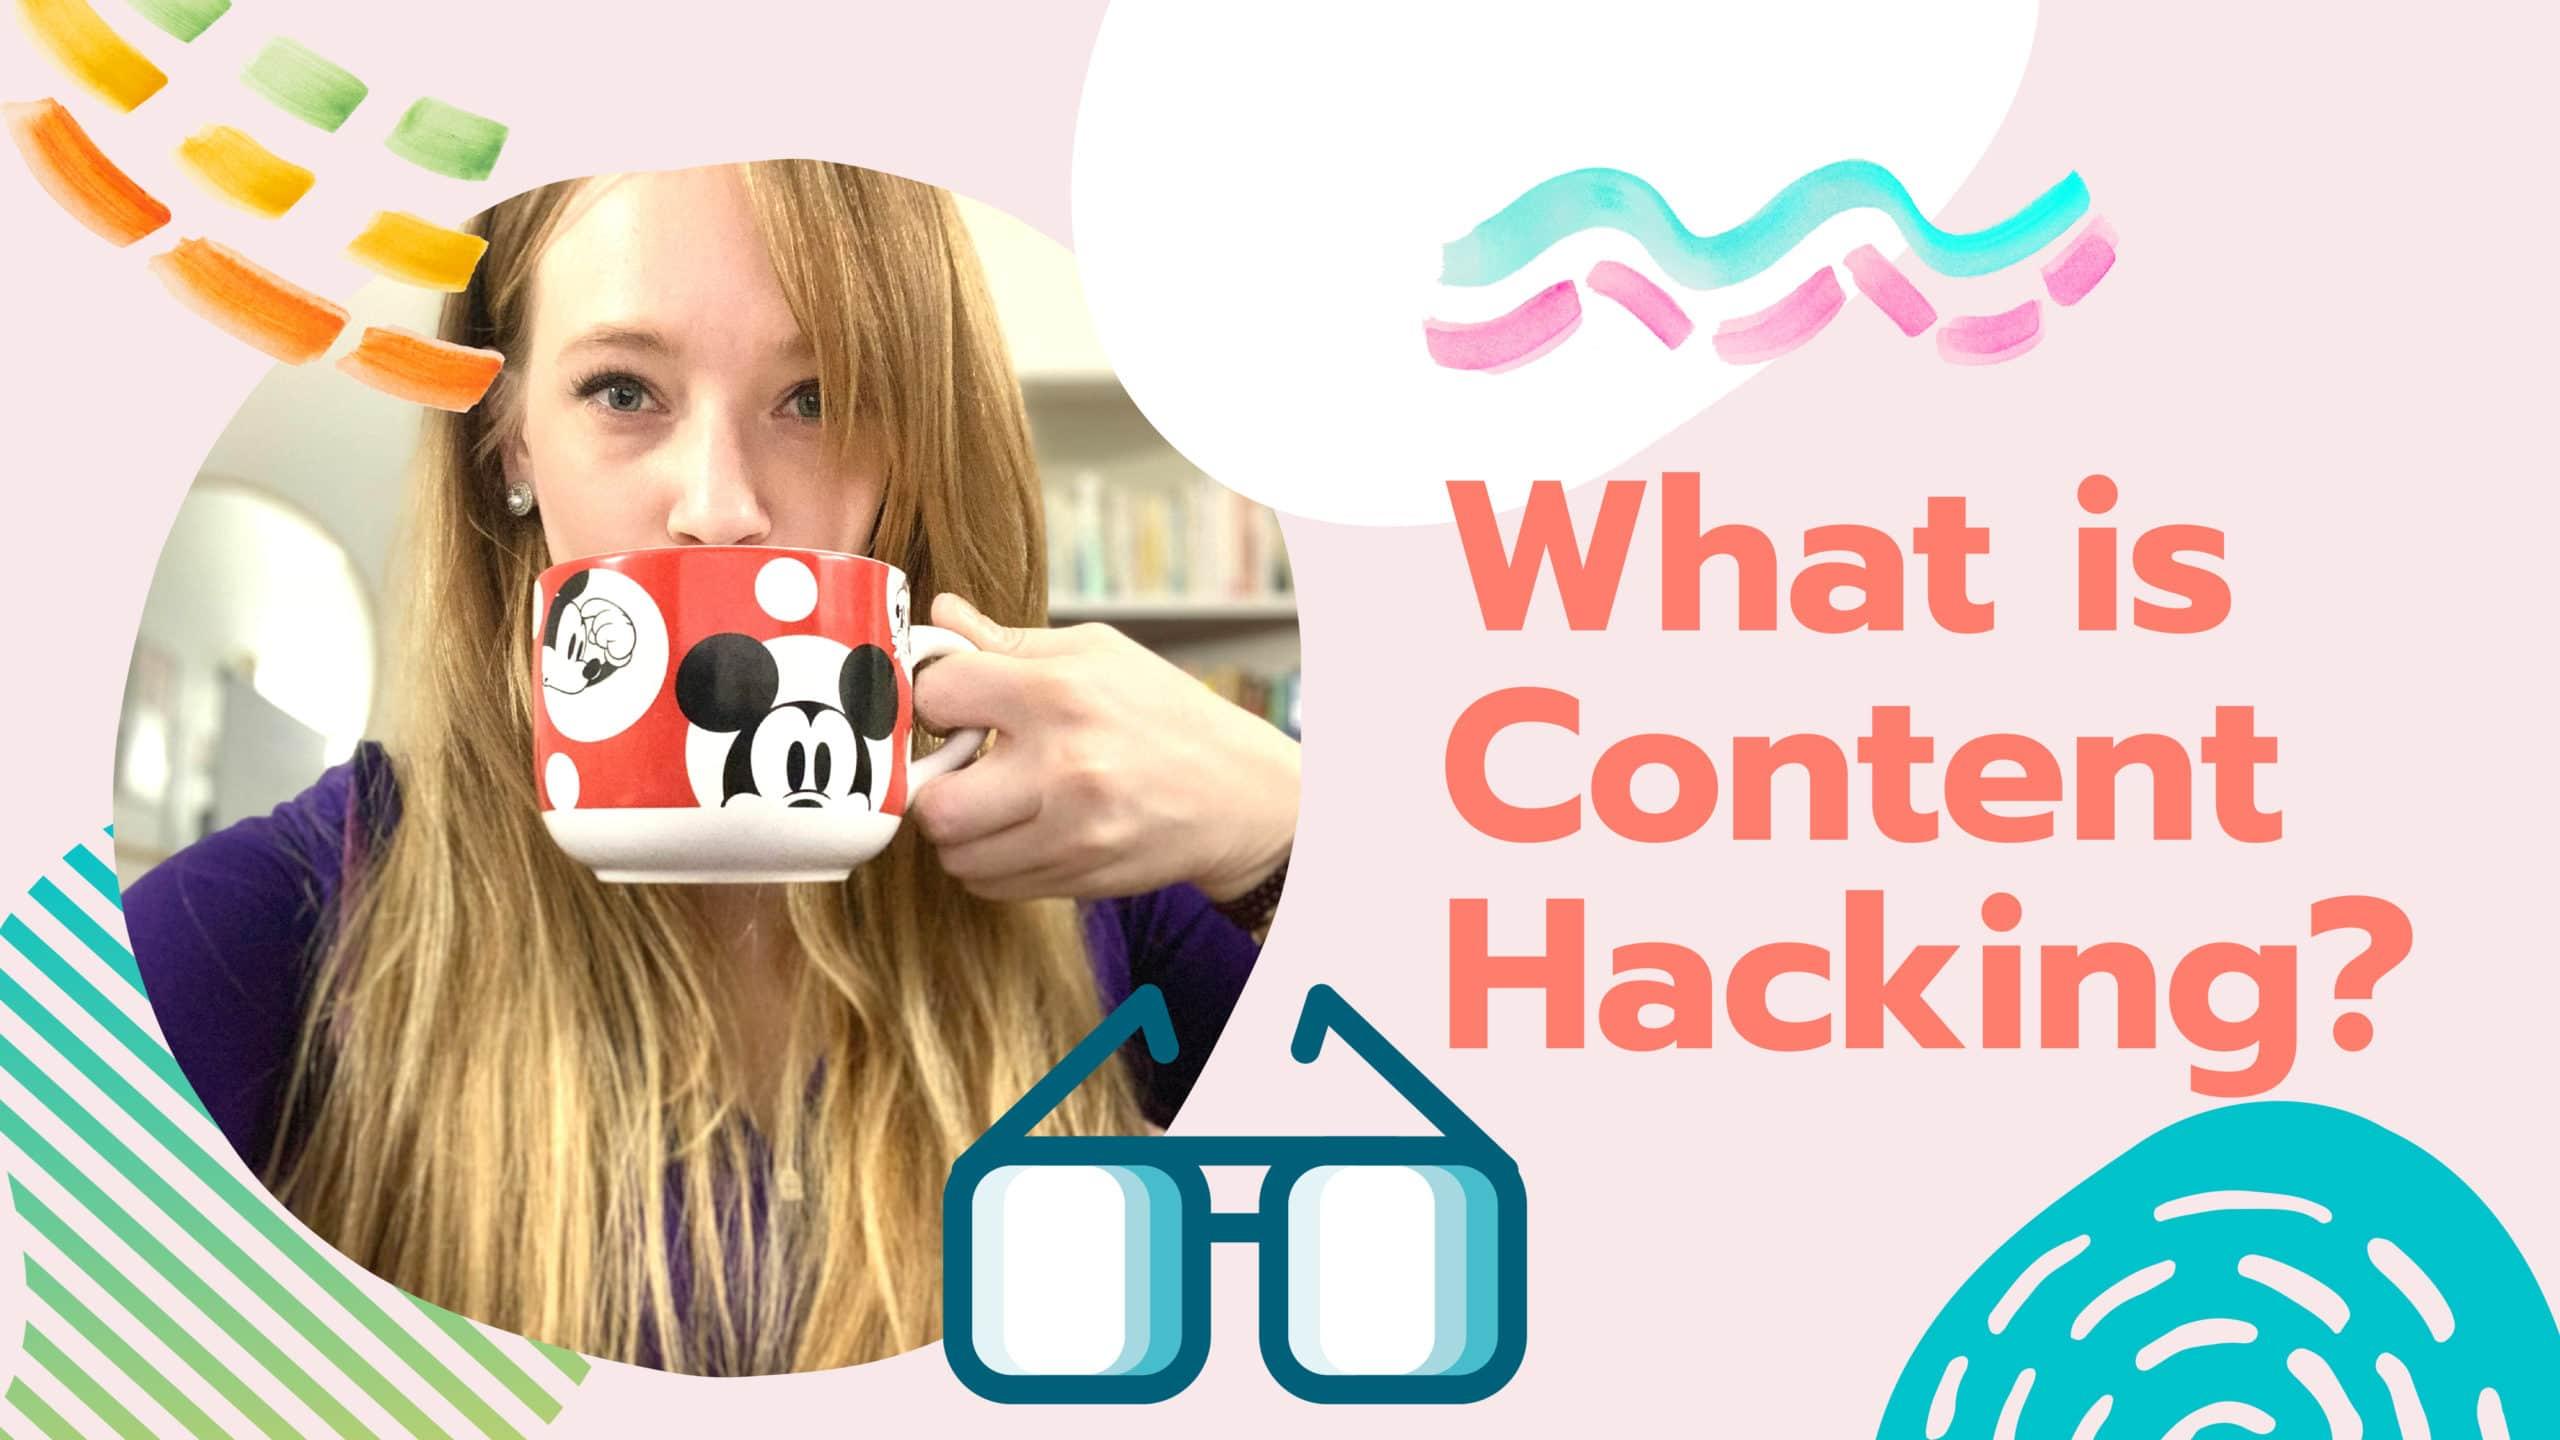 How to Use Content Hacking to Create Quality New Content That Performs